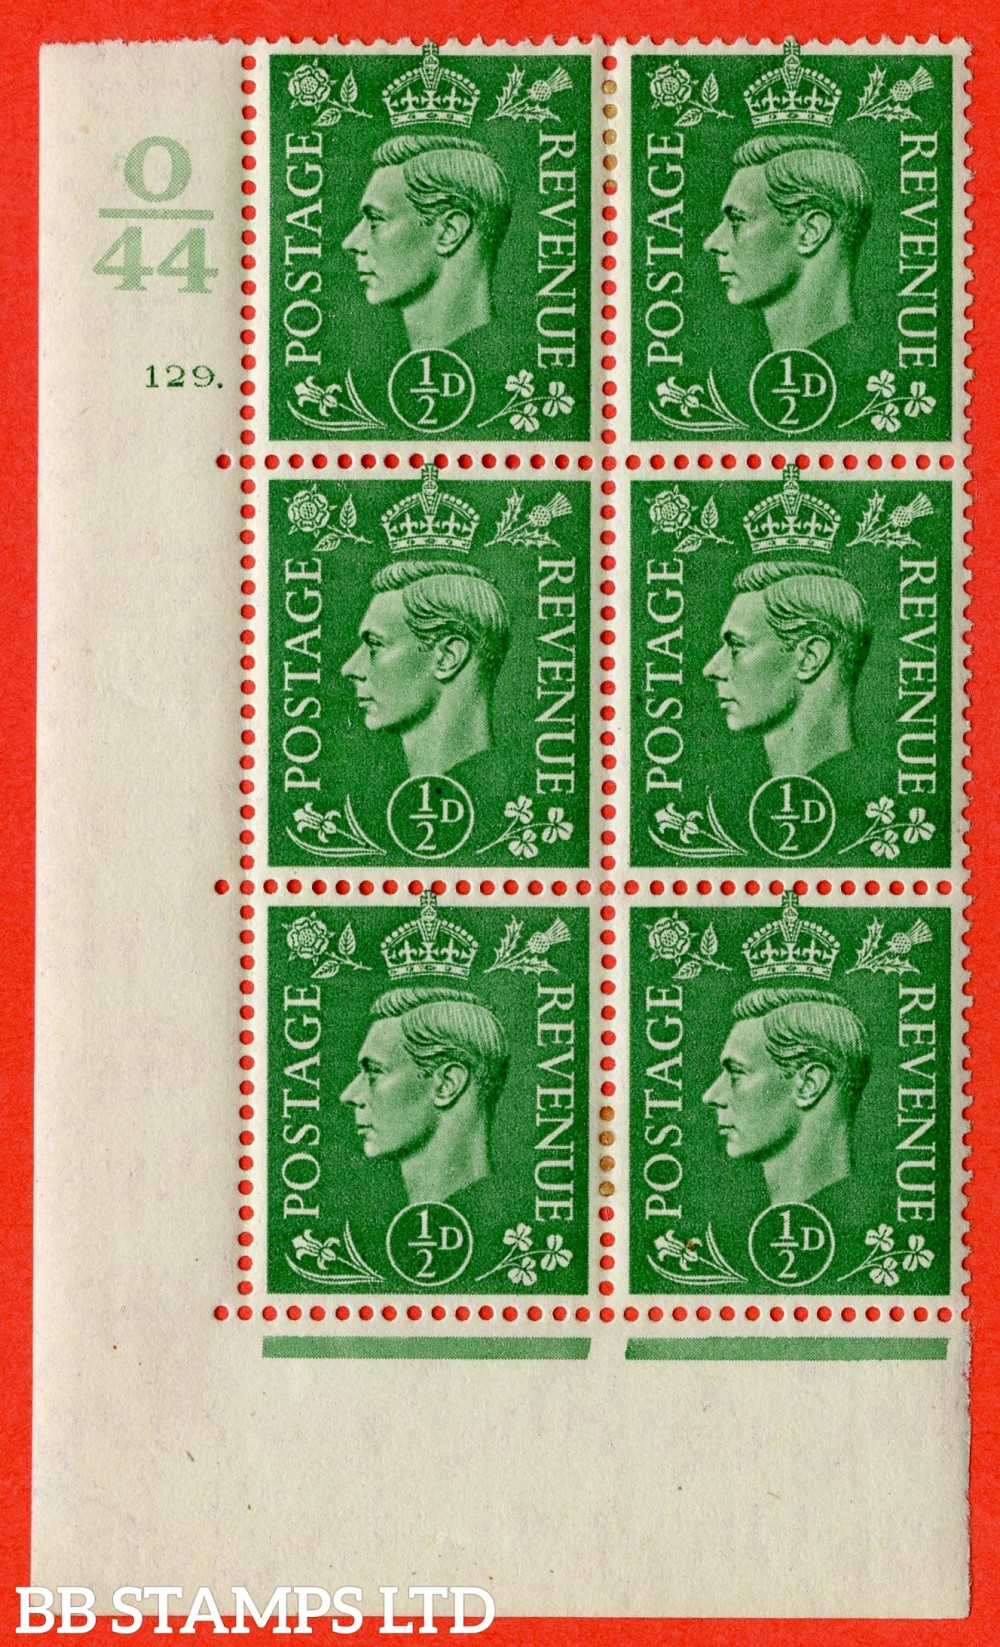 "SG. 485. Q2. ½d Pale Green. A very fine lightly mounted mint "" Control O44 cylinder 129 dot "" block of 6 with perf type 5 E/I with marginal rule."